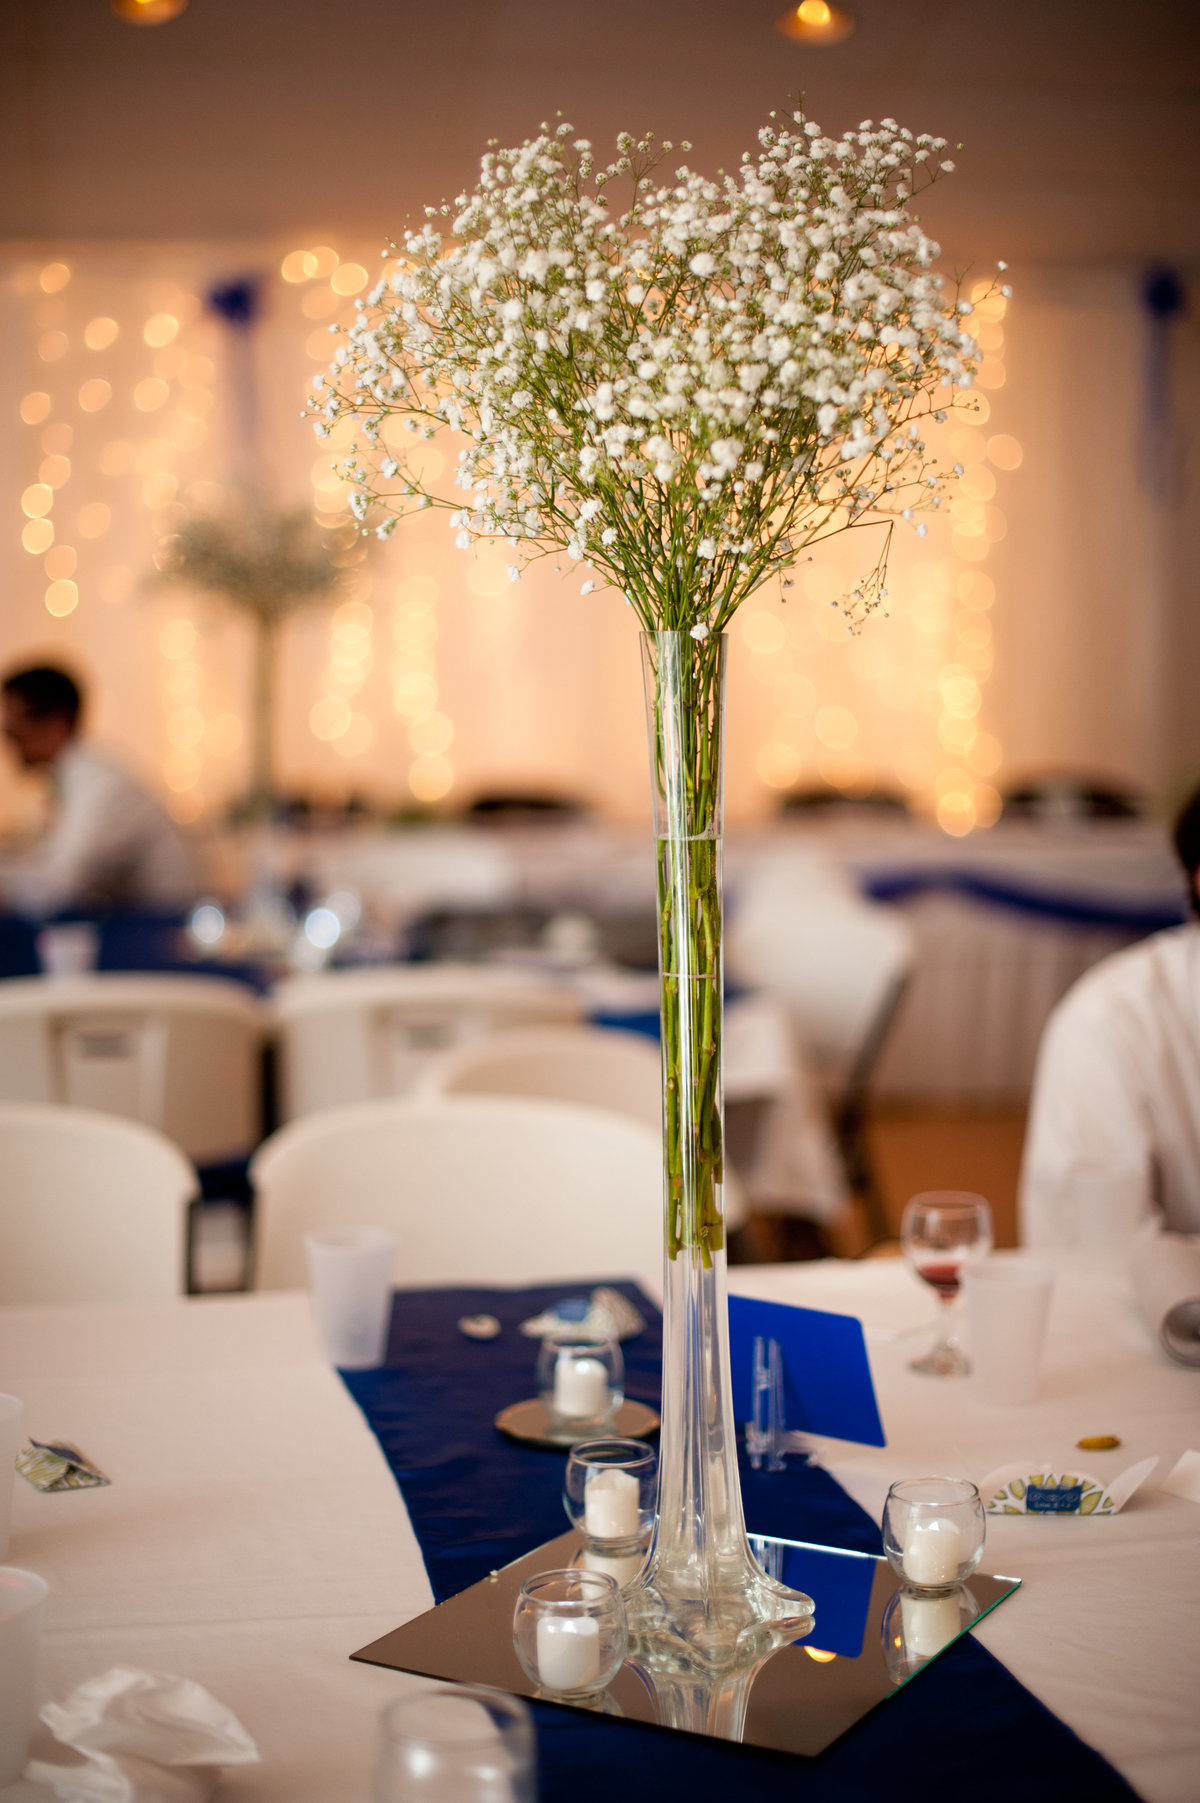 flowers on table at wedding reception